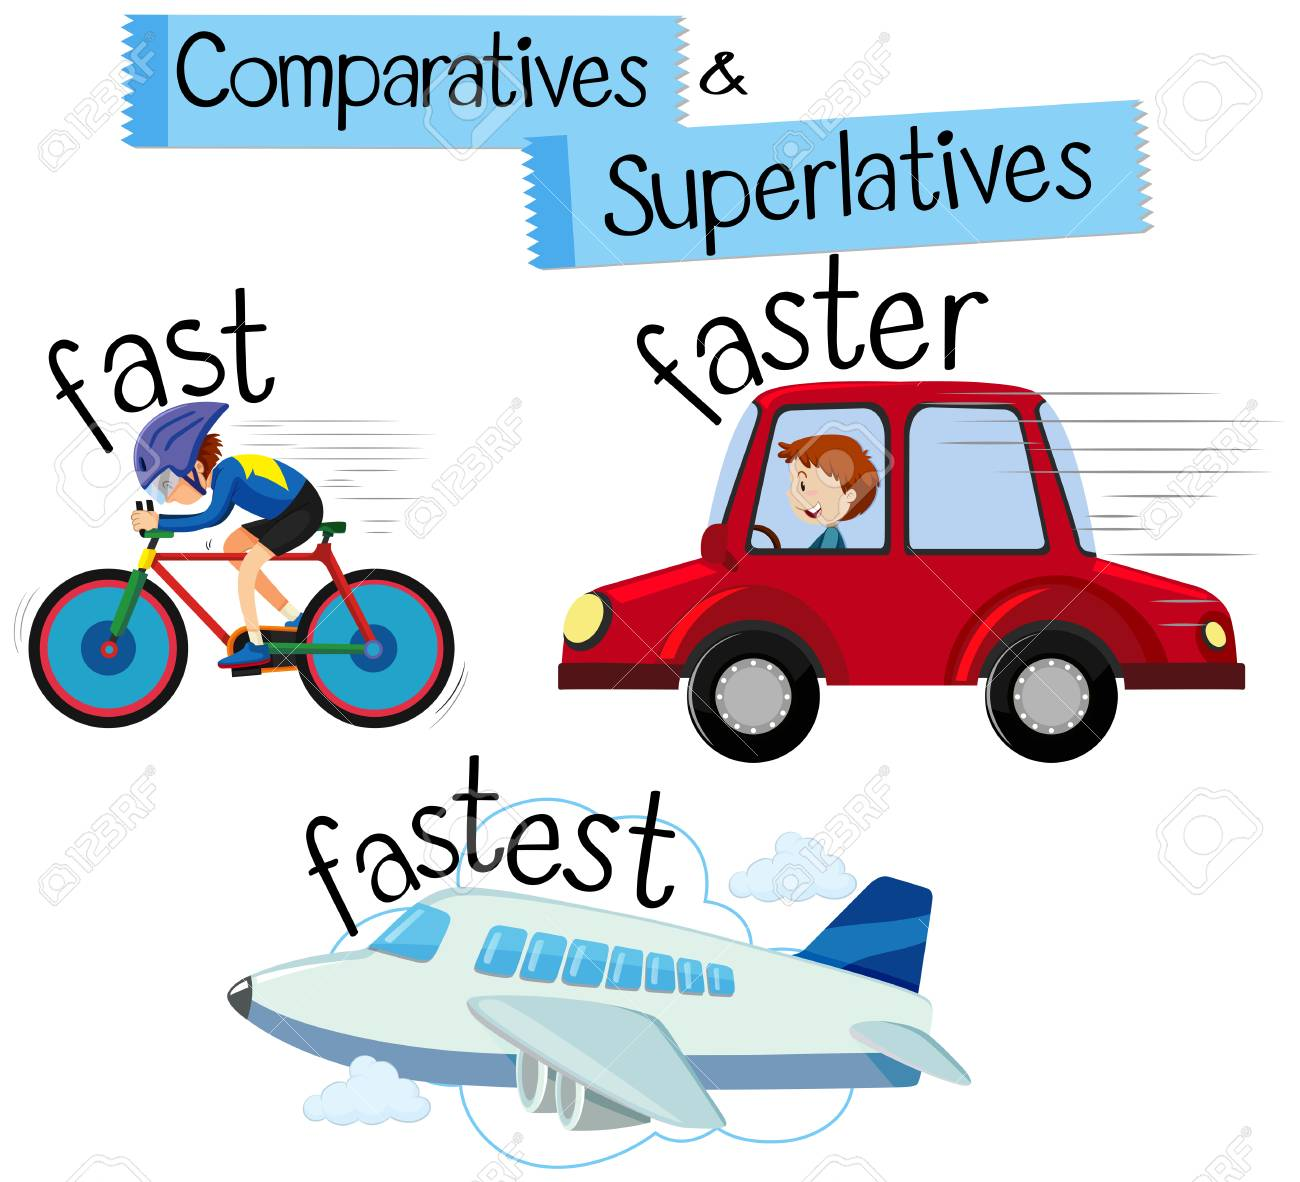 Comparatives and superlatives for word fast illustration.